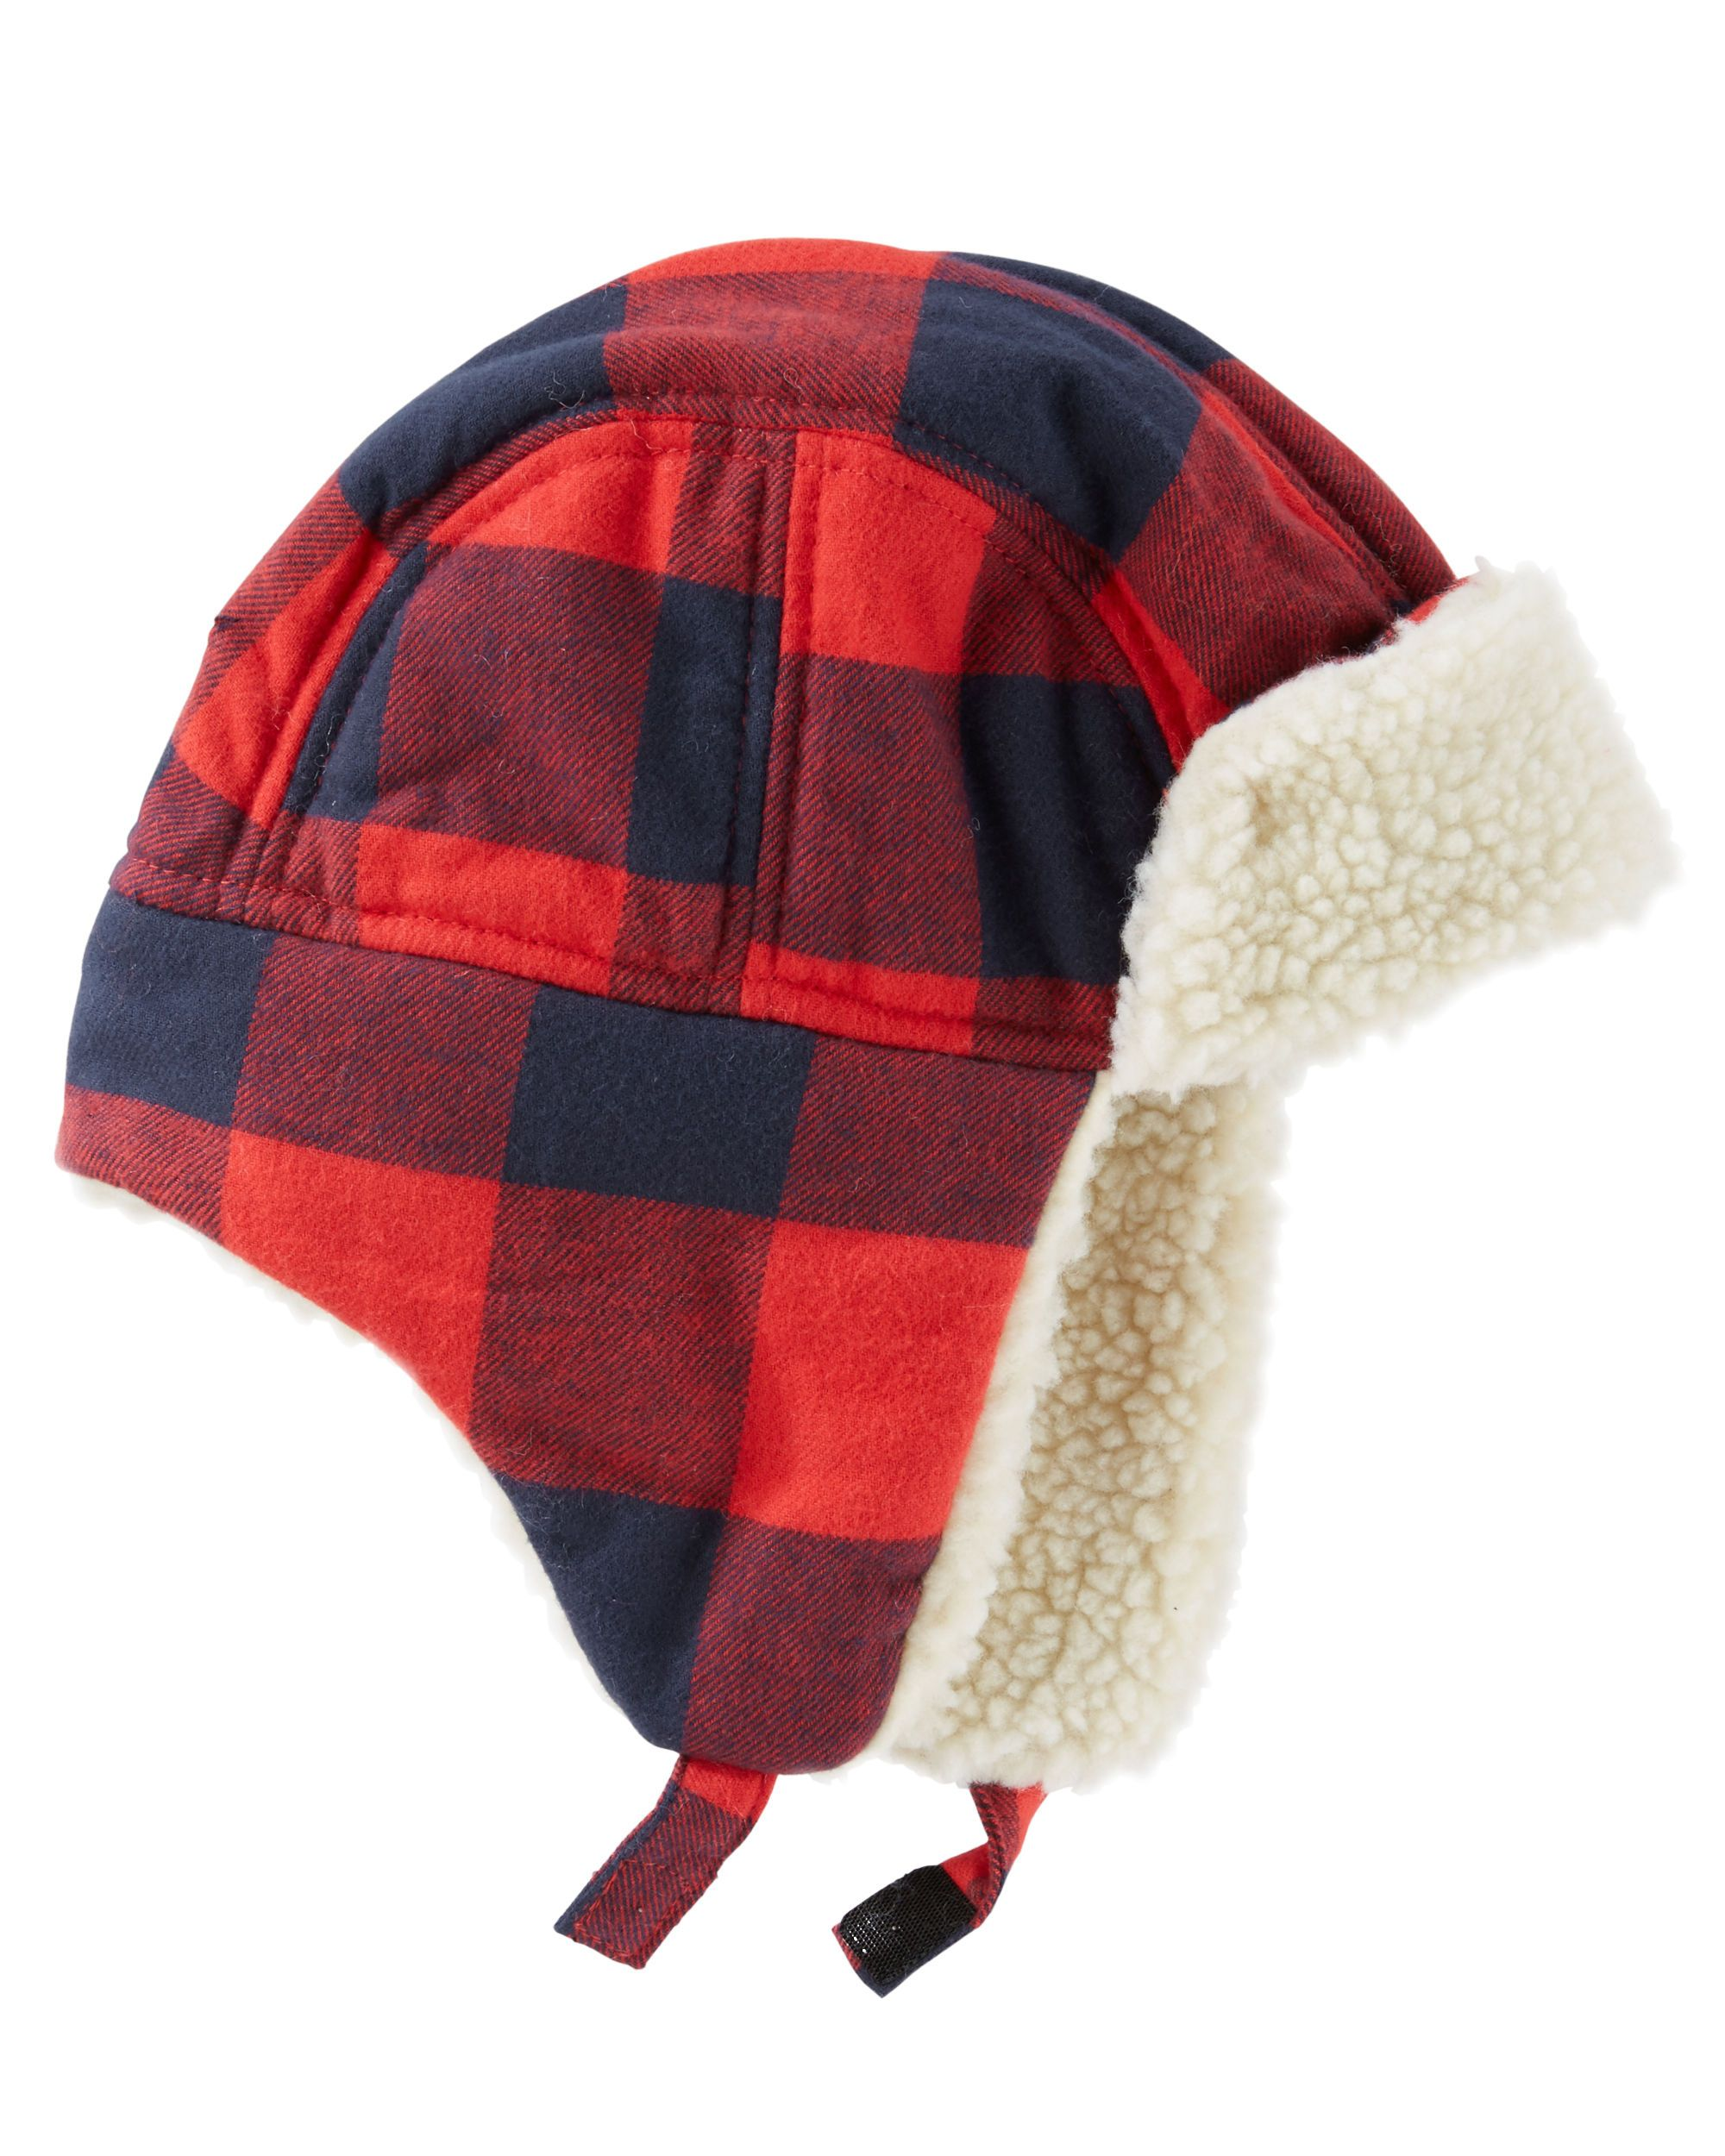 9b56c842911 Baby Boy Buffalo Check Trapper Hat from OshKosh B gosh. Shop clothing    accessories from a trusted name in kids